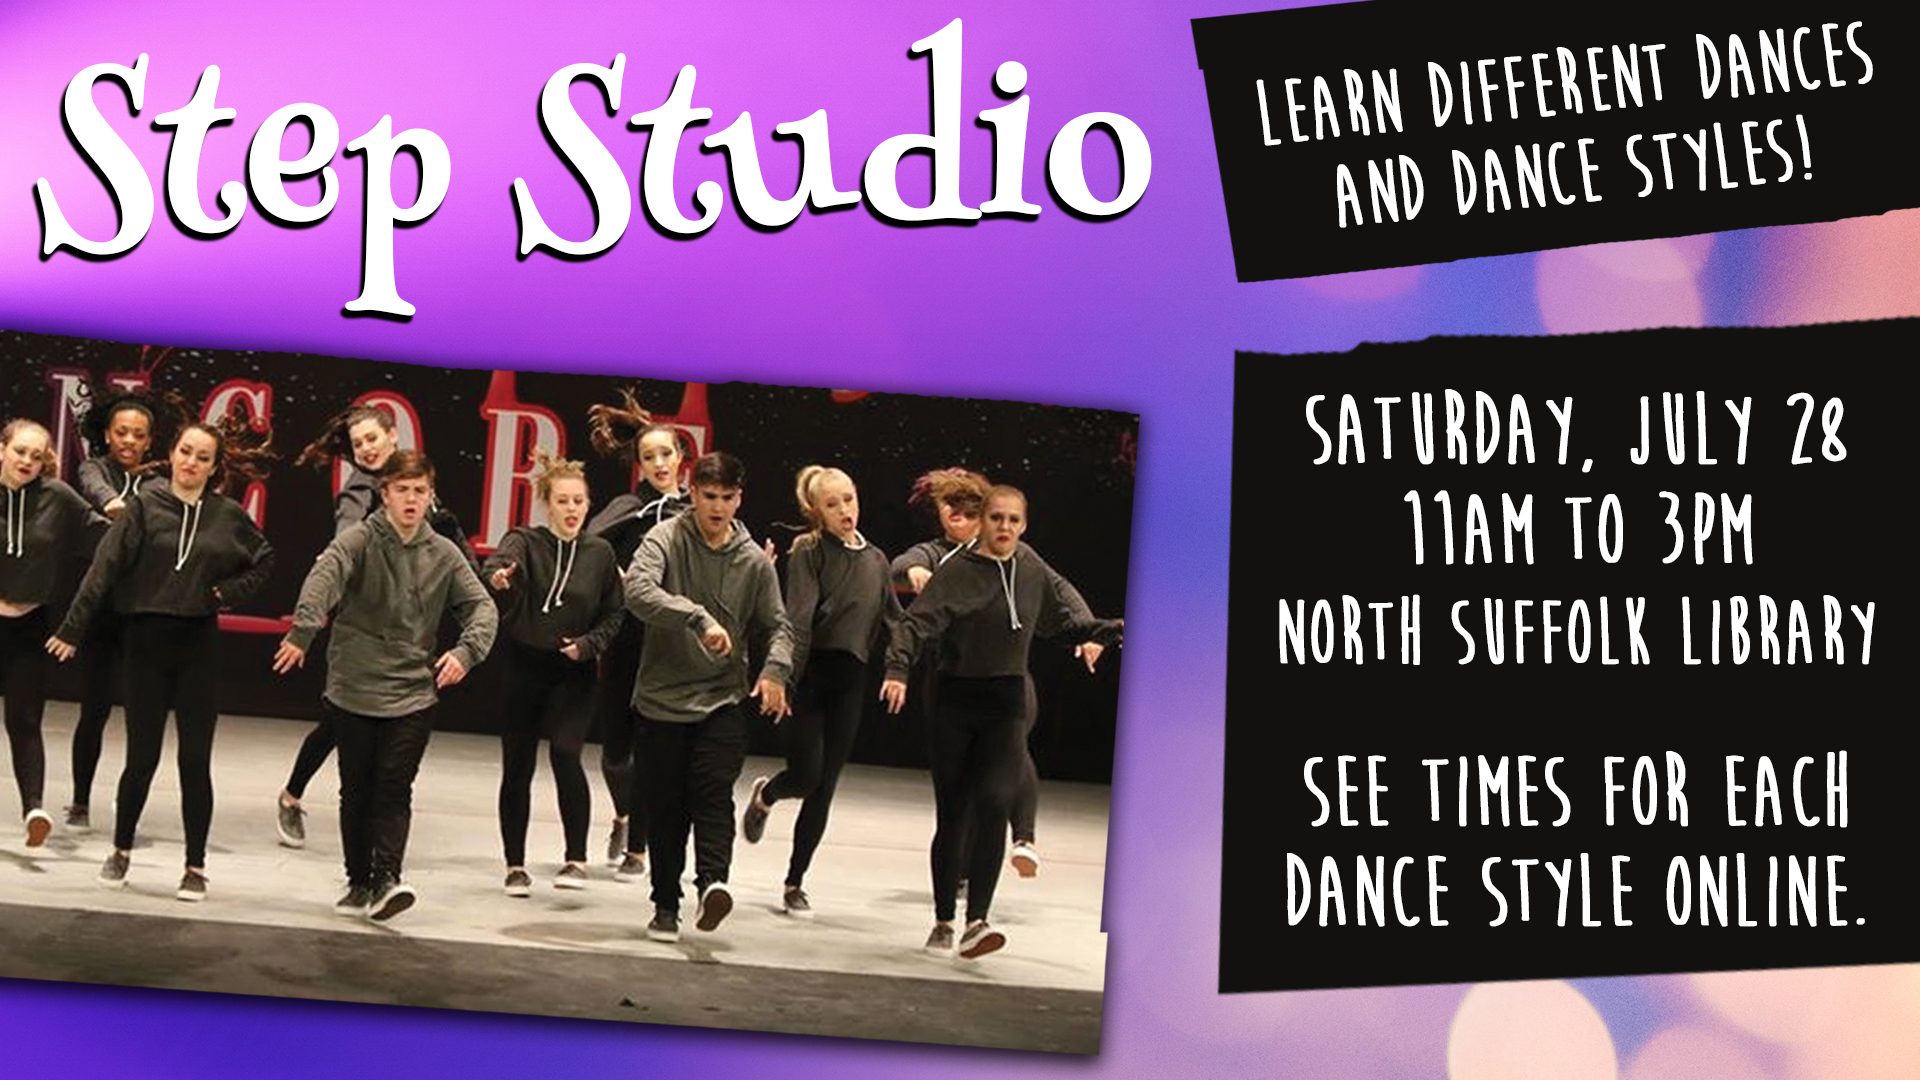 Day of Dance:  Step Studio